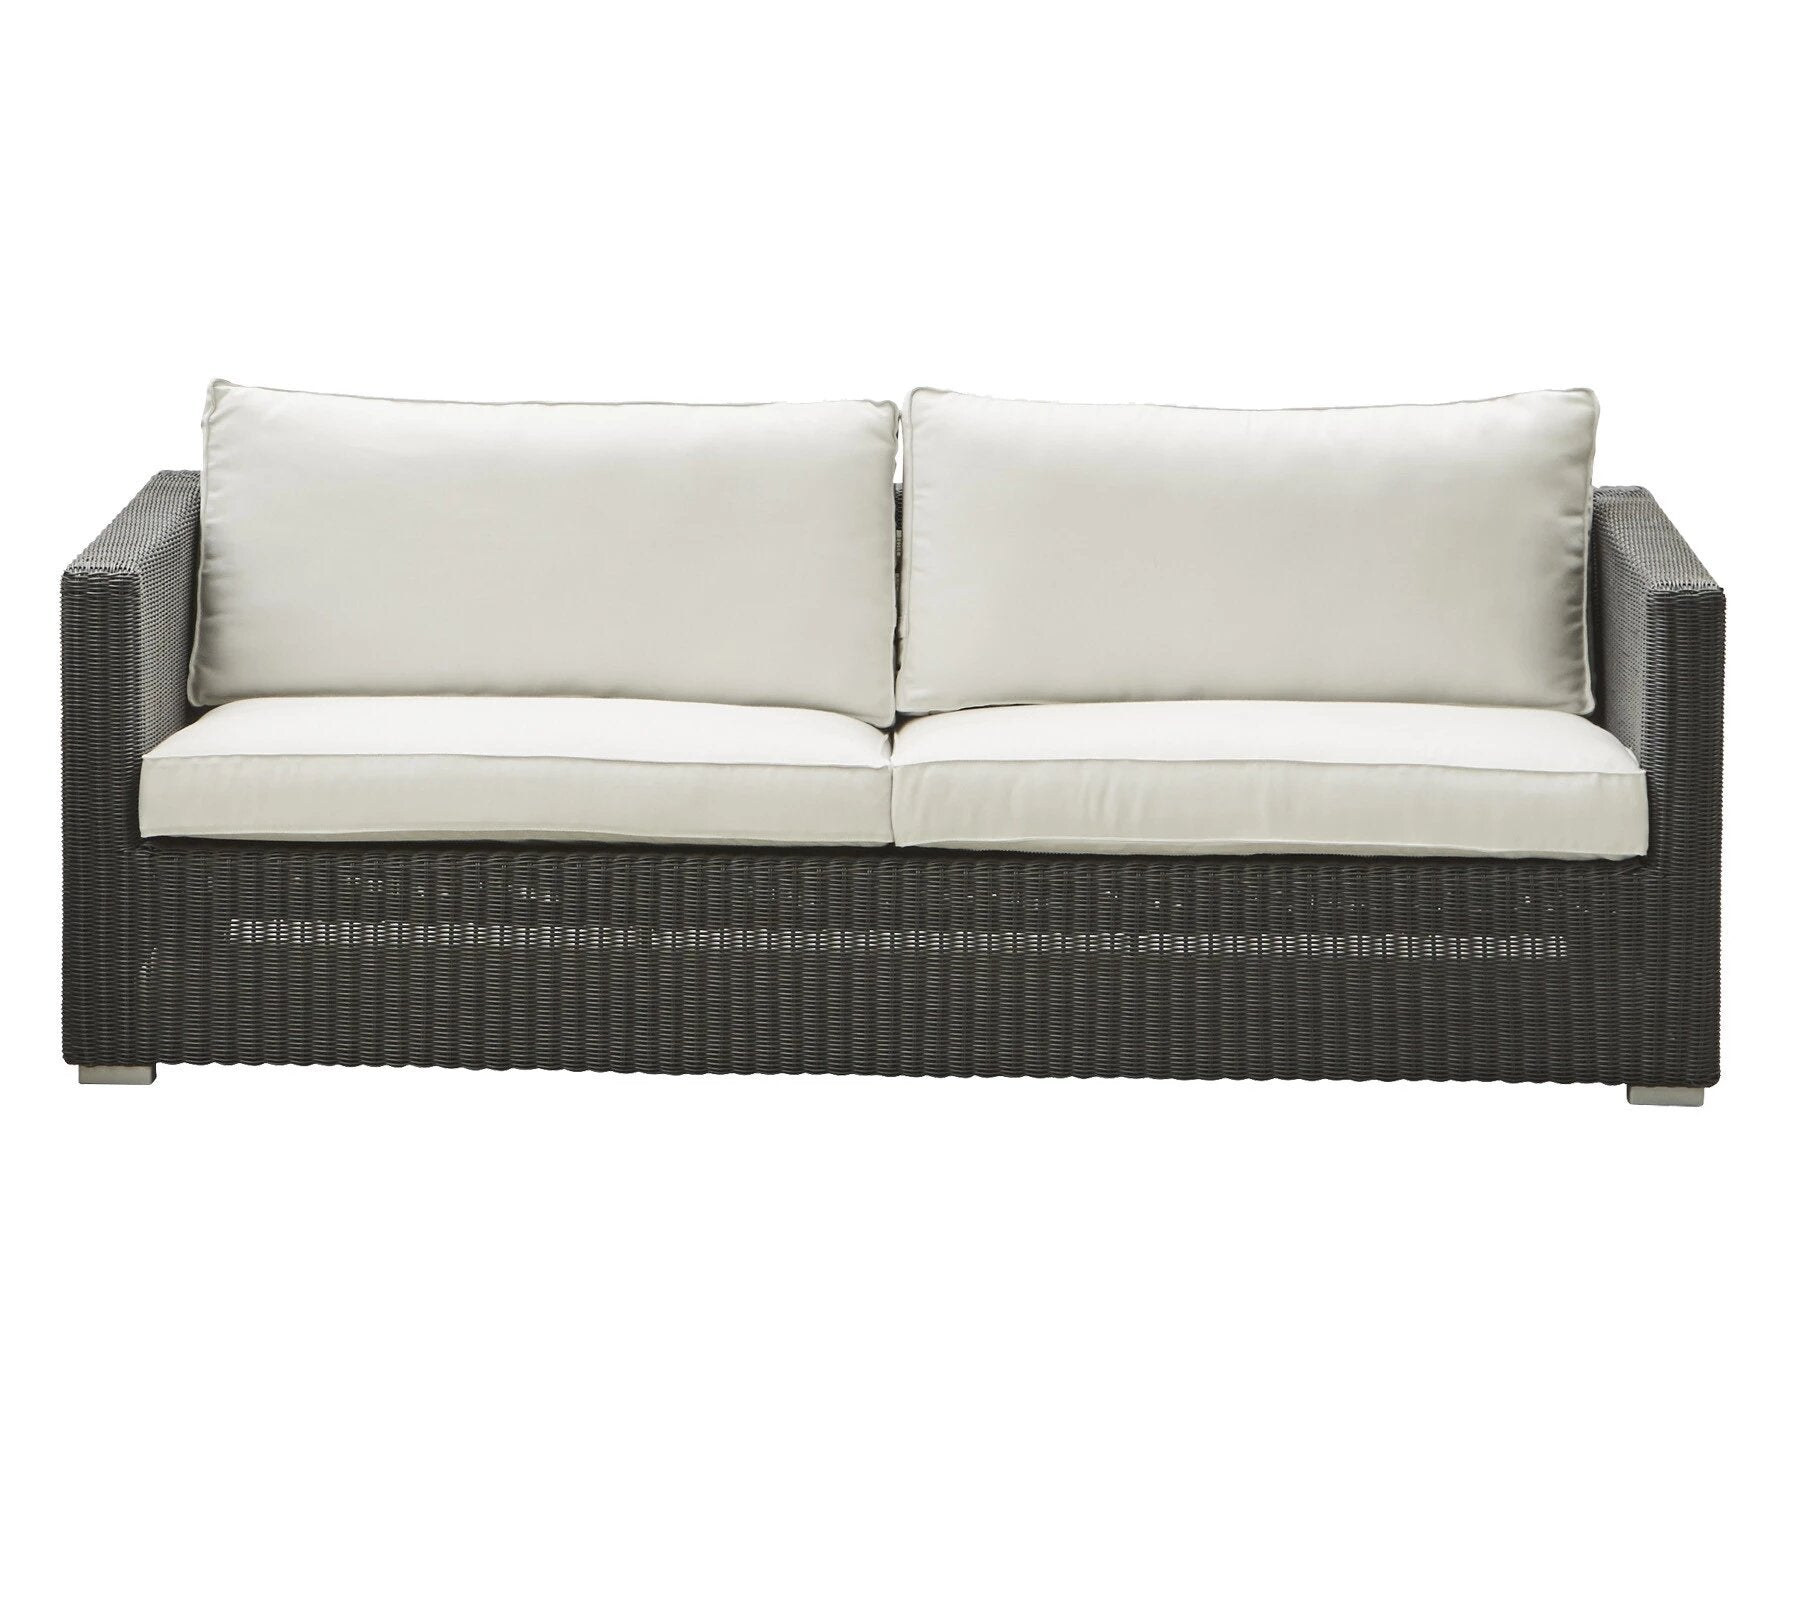 Chester 3-Seater Lounge Sofa